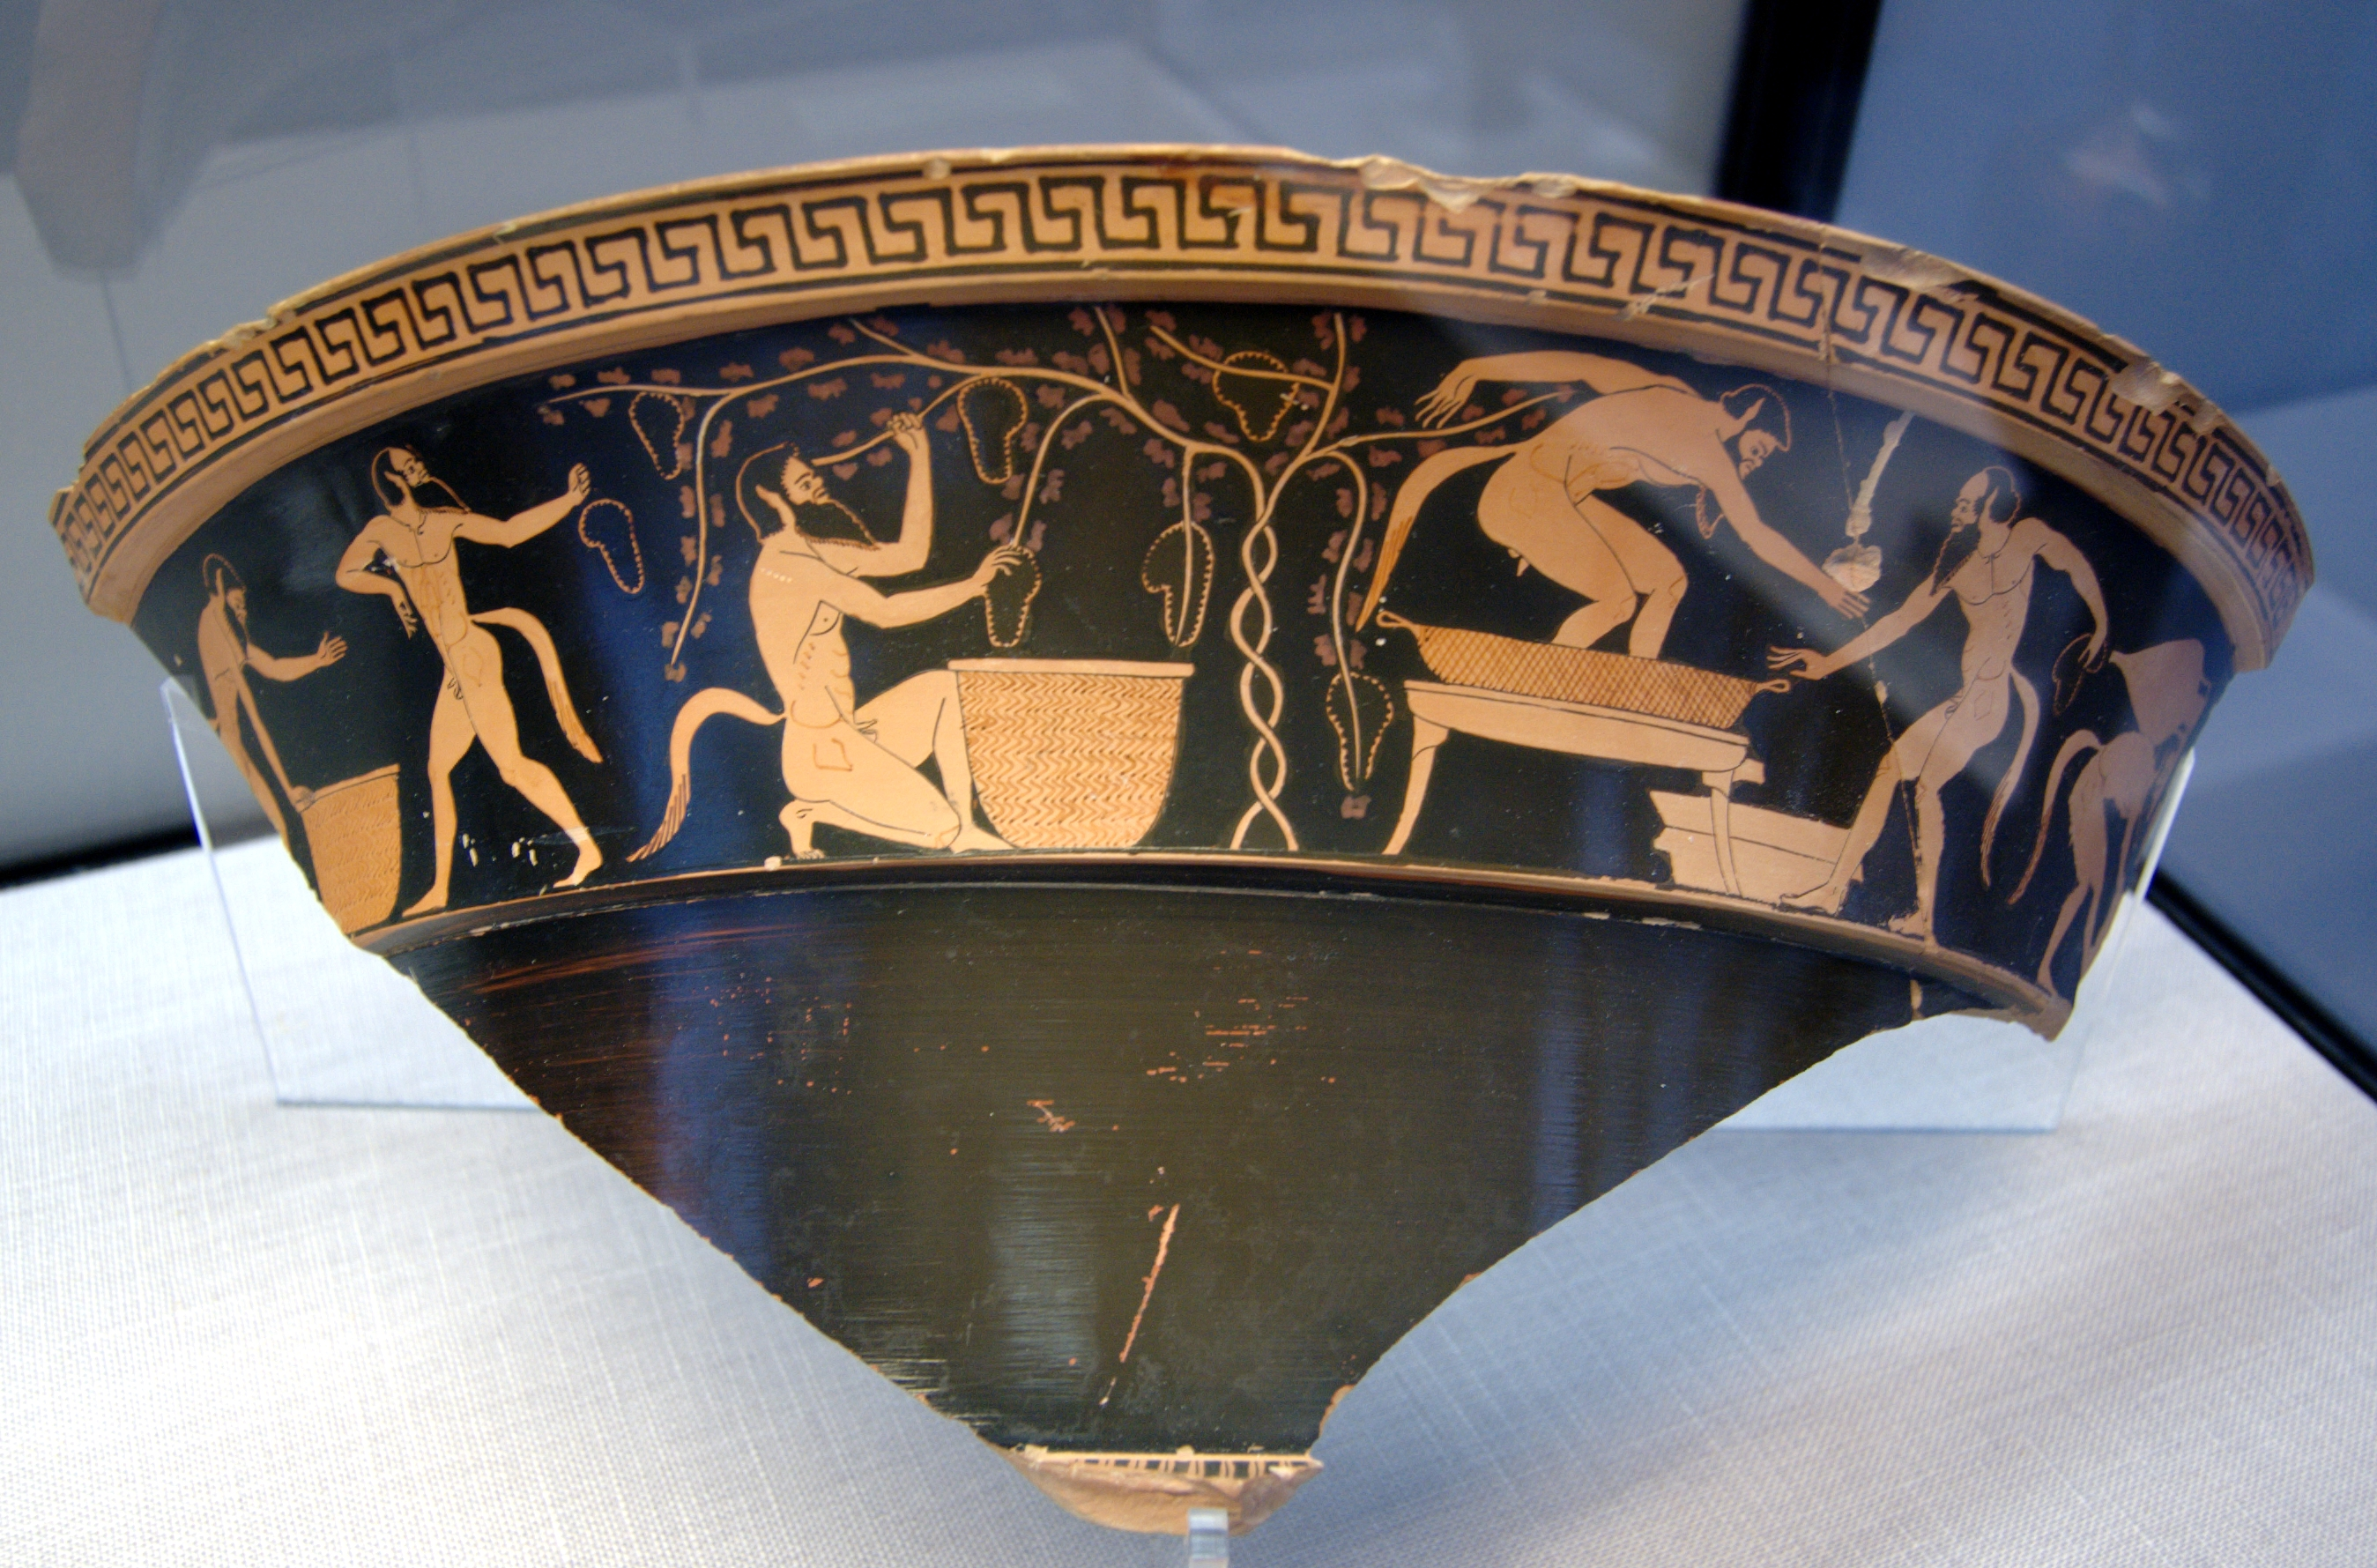 Satyrs in vineyard. Attic red-figure volute-krater, ca. 490 BC, State Collections of Antiques in Munich. Photo taken on February 10, 2007.